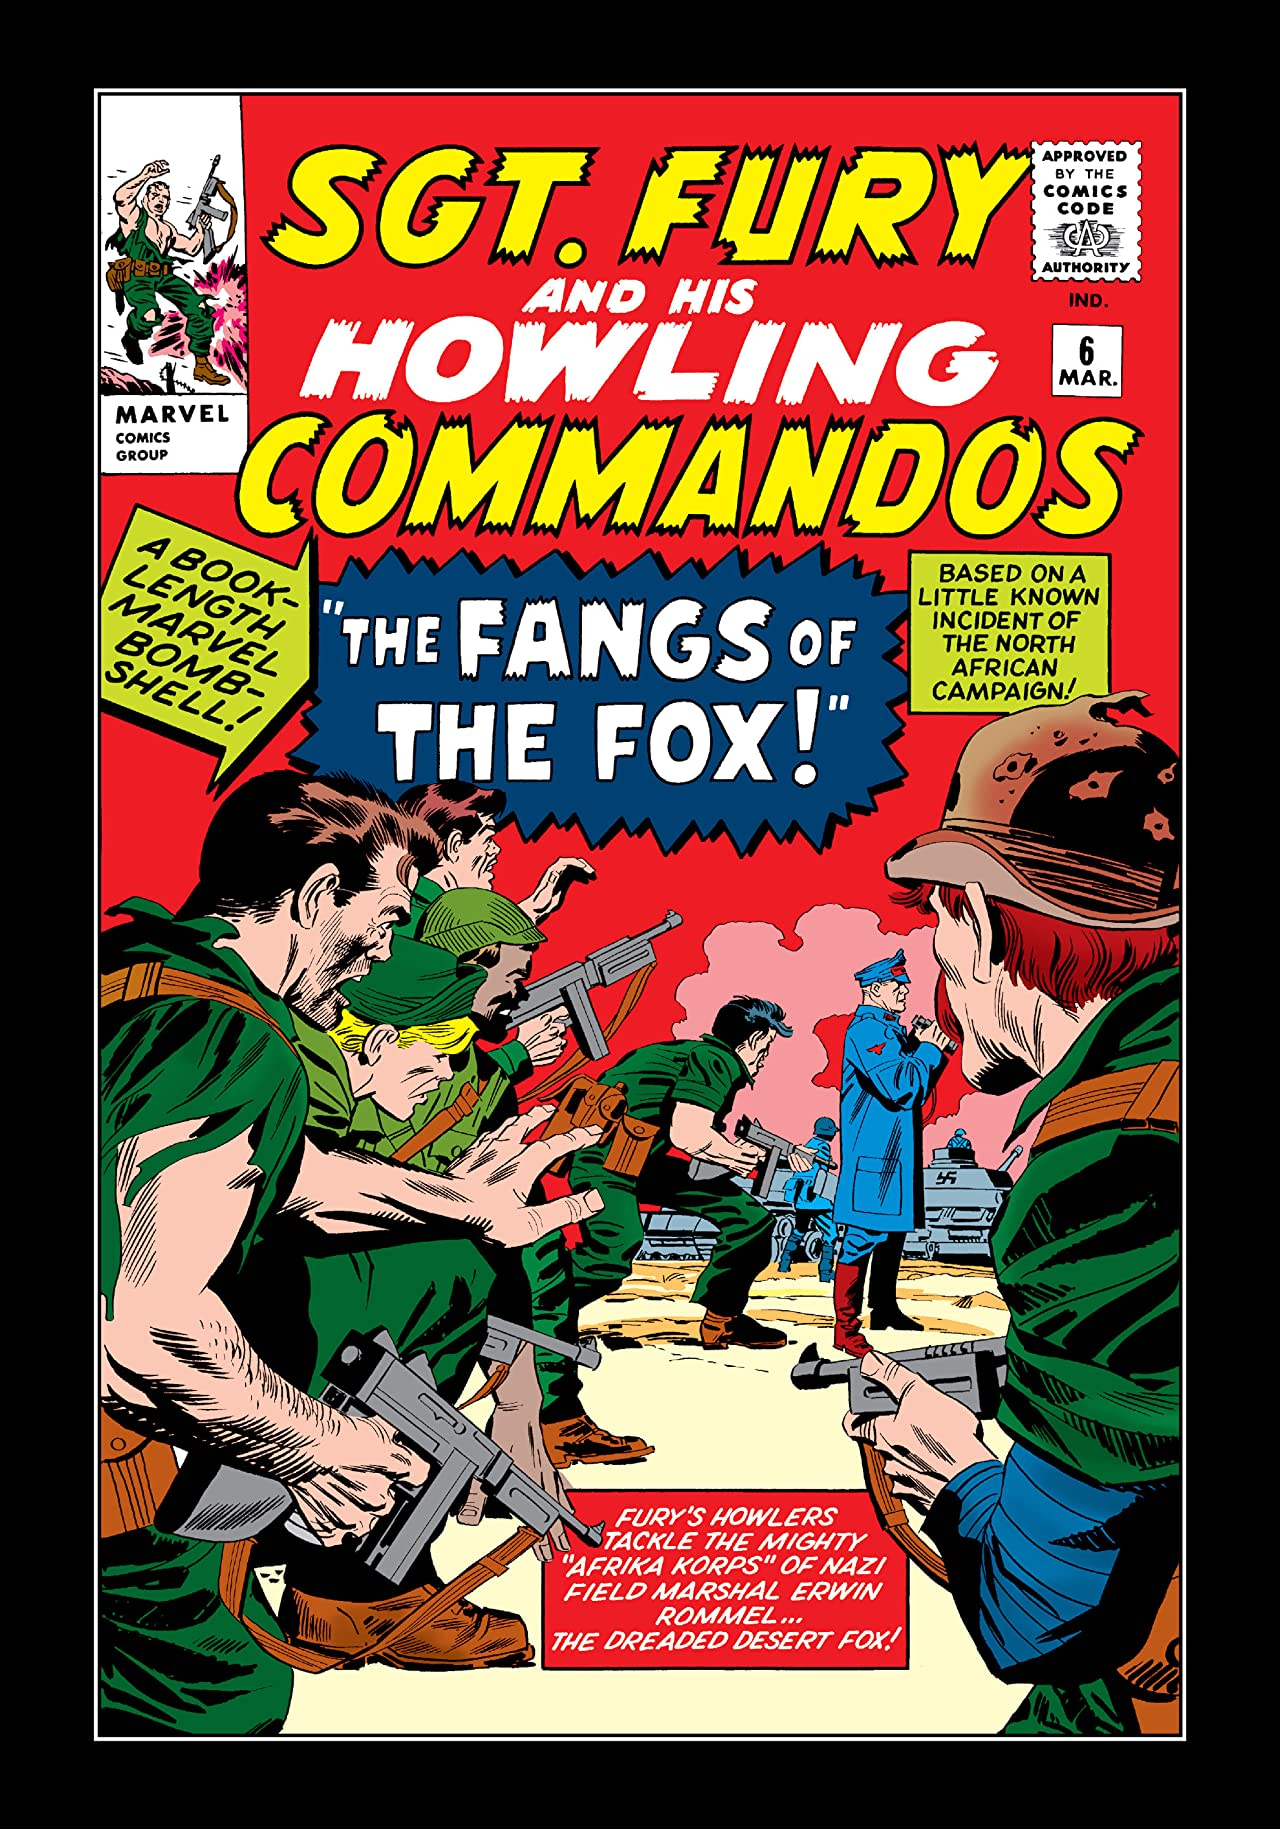 Sgt. Fury and His Howling Commandos (1963-1974) #6